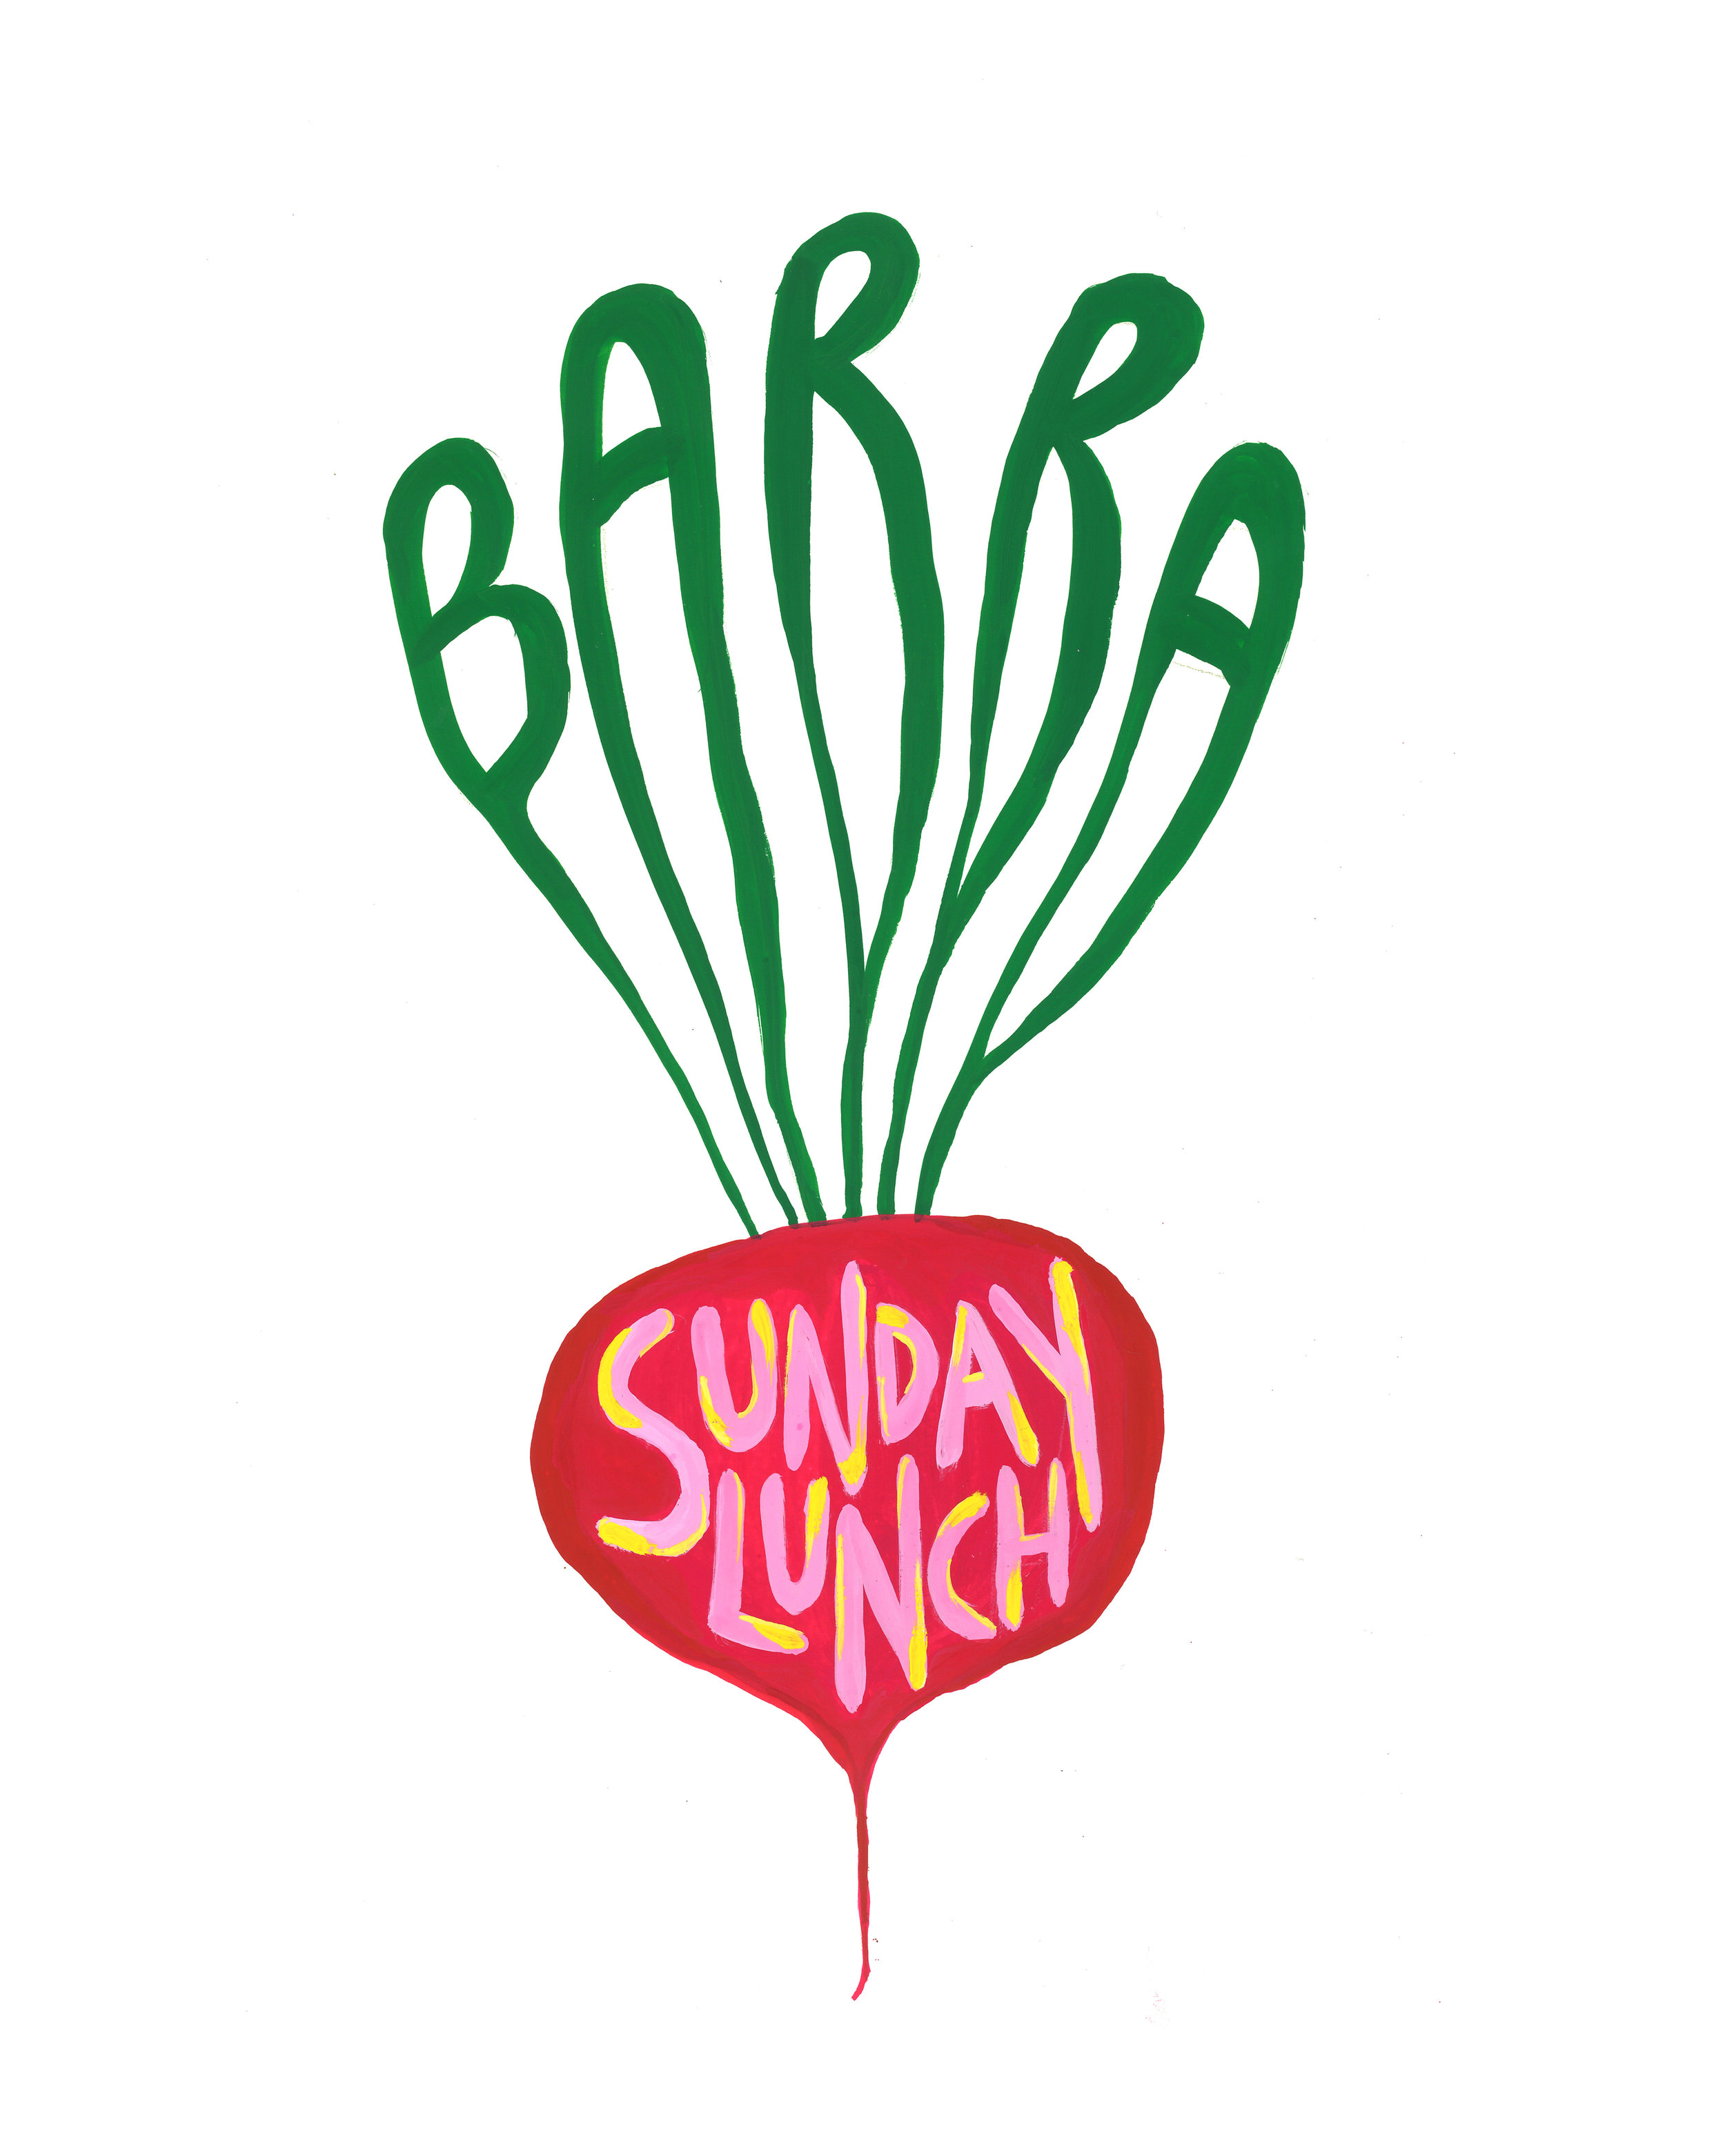 ROUND II - It was so much fun last time, we had to do it again!Sunday 26th May we'll have Spring luncheon spread! Fizz, Mags & Bloody Marys!Kitchen 12:30 - 17:00--*Starters to share between the tableMains & Dessert individual portions*White Asparagus & Sauce GribicheTomatoes, Tropea Onion & LovageRadishes & AnchovyMutton, Peas & Dauphinoise PotatoesorNew Potato & Raclette TartTreacle Tart & Goats Milk Ice Cream38€ per personAdditional: Oysters & Cheese!---Reservations: reservations@barraberlin.com*We won't be open for dinner service that evening*Design by the magical @categowers